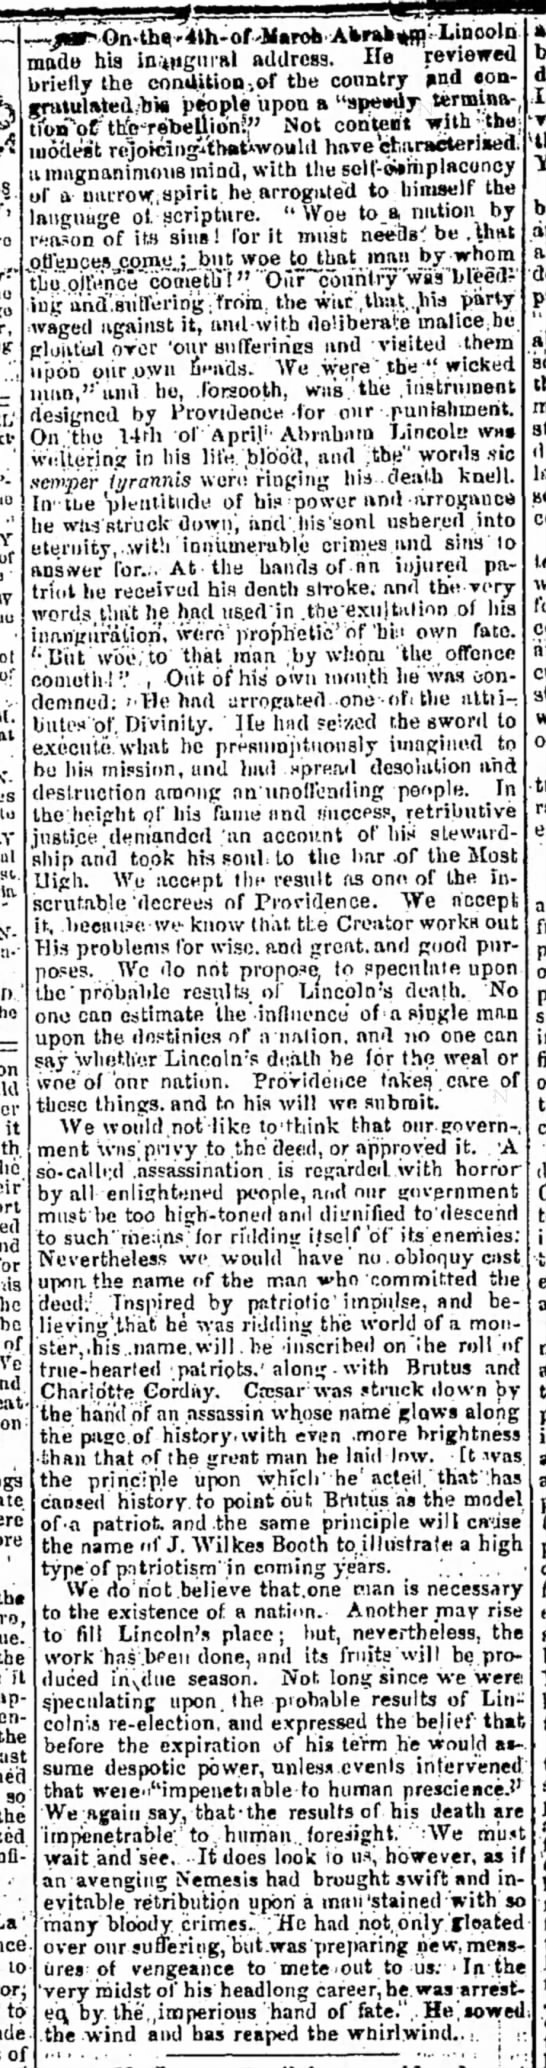 A Texas newspaper's editorial about the assassination of Abraham Lincoln -